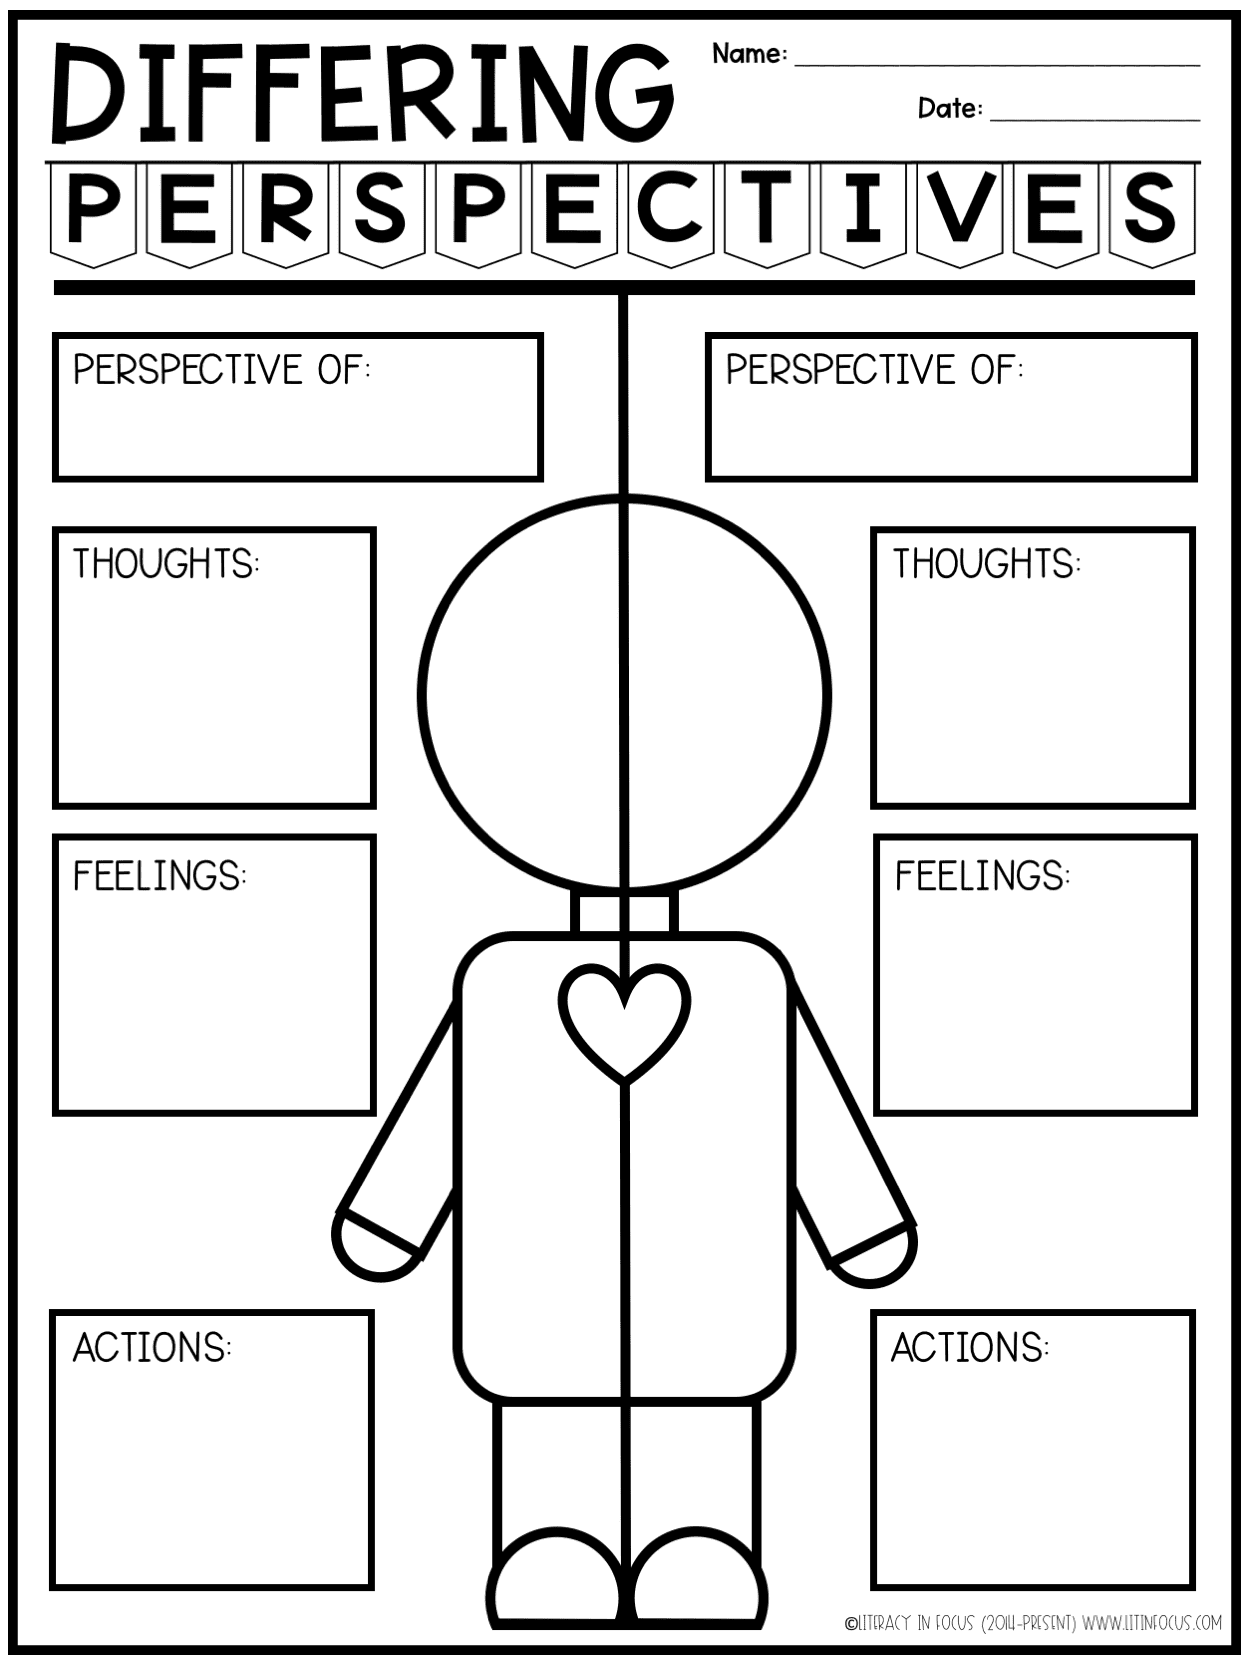 5 Key Reasons To Teach Differing Perspectives (With images